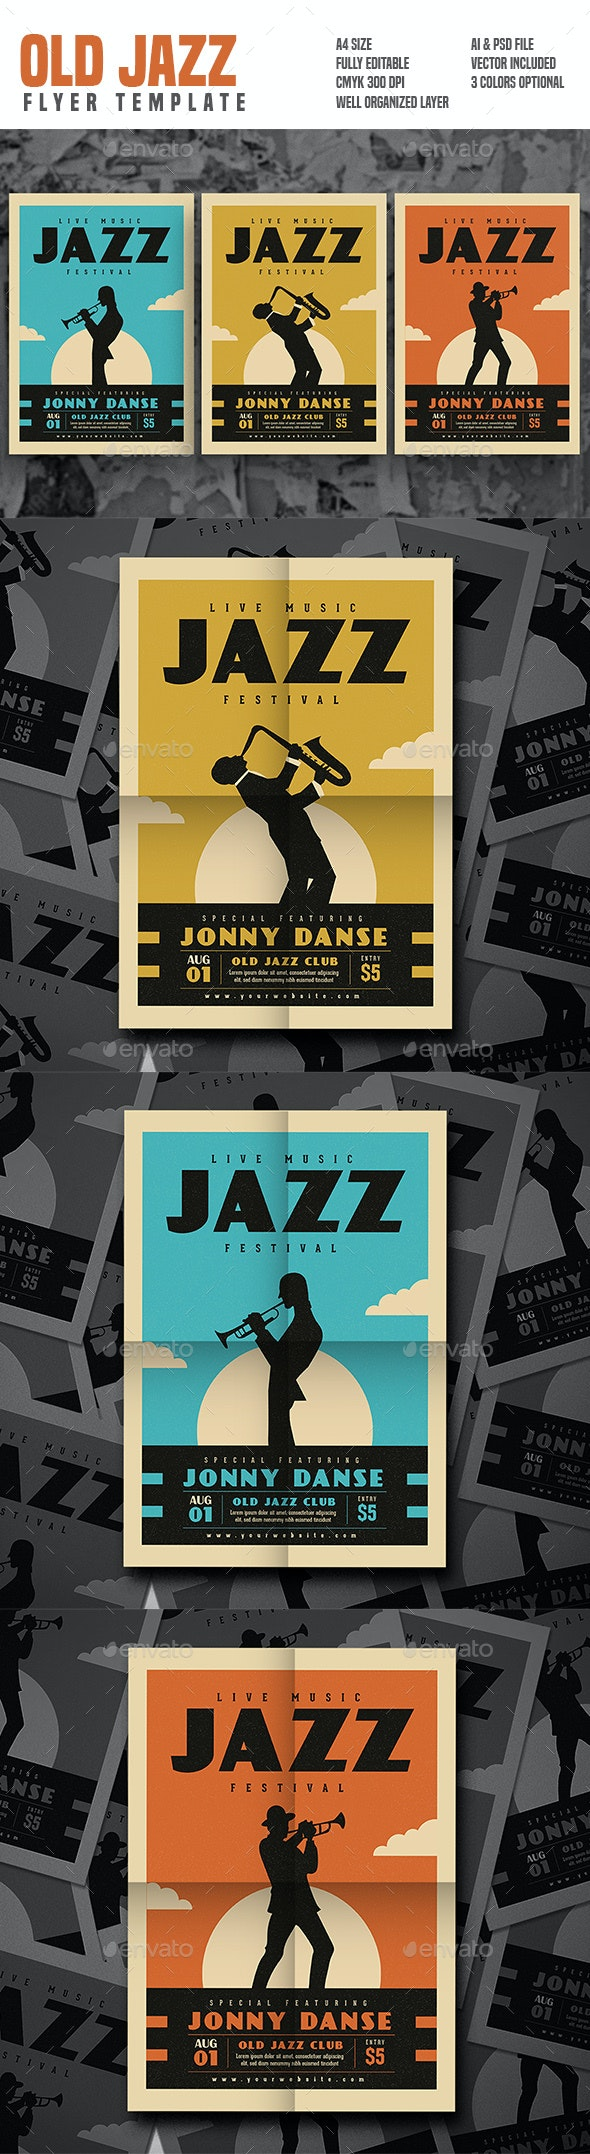 Old Jazz Festival Flyer Series - Concerts Events